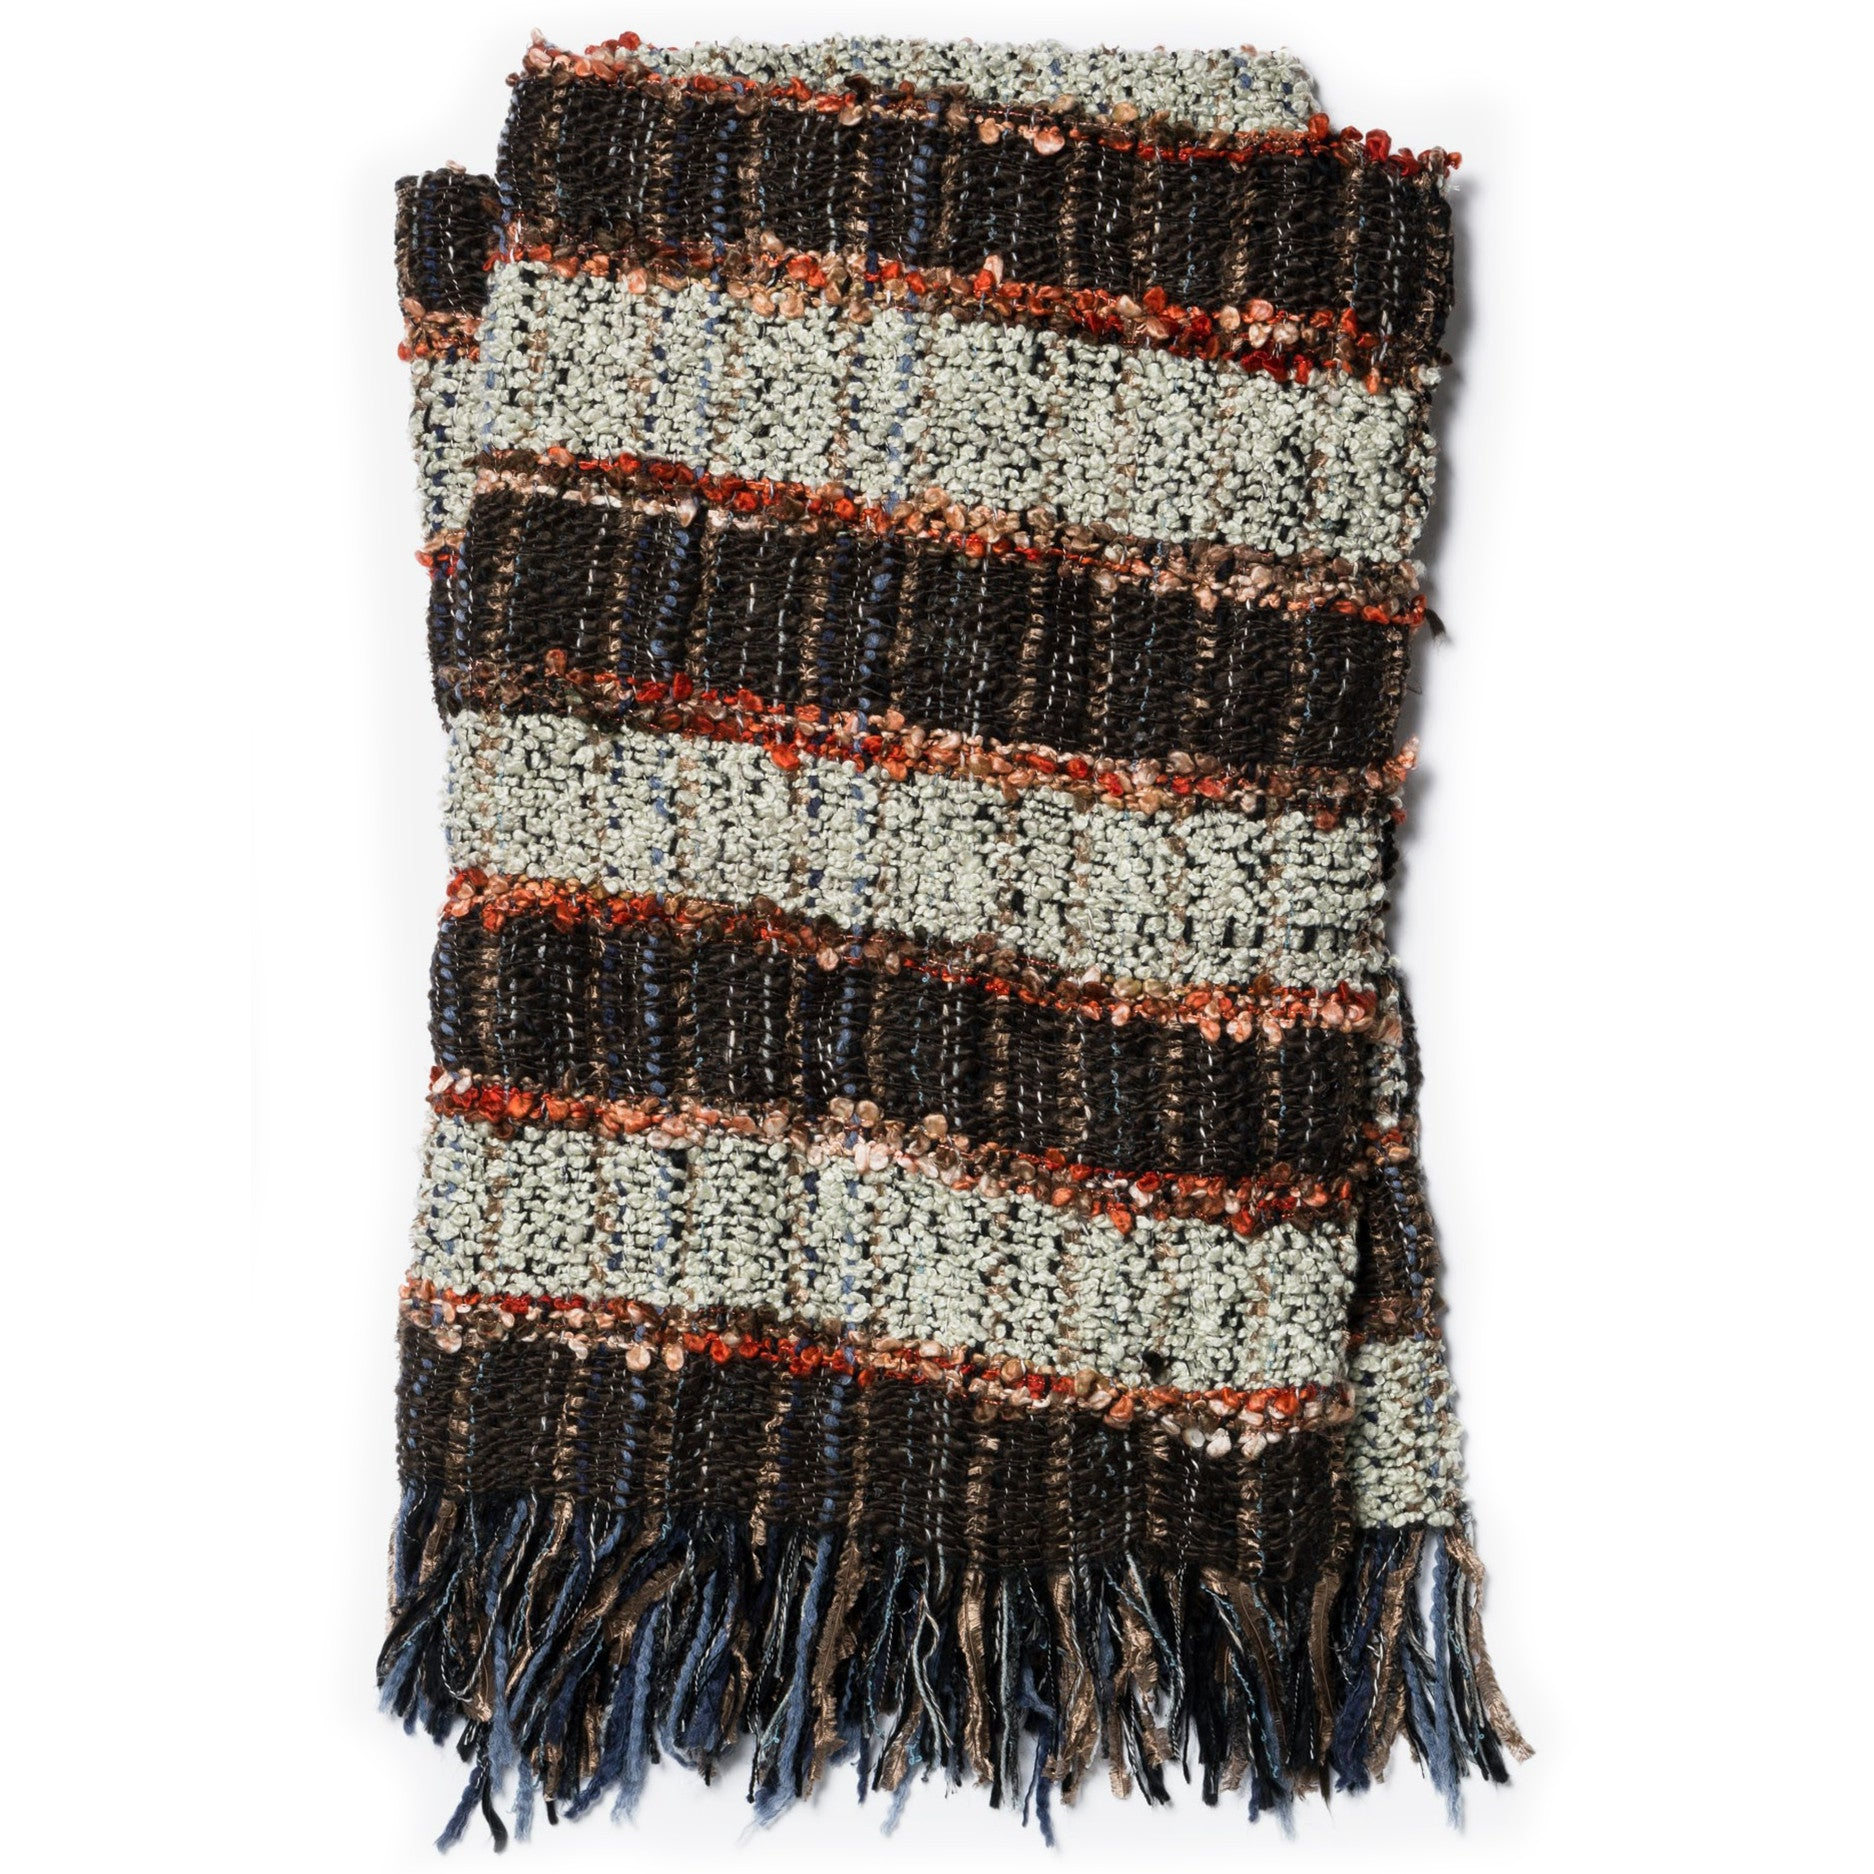 trendy woven brown and gray throw blanket  woodwaves - trendy woven brown and gray throw blanket